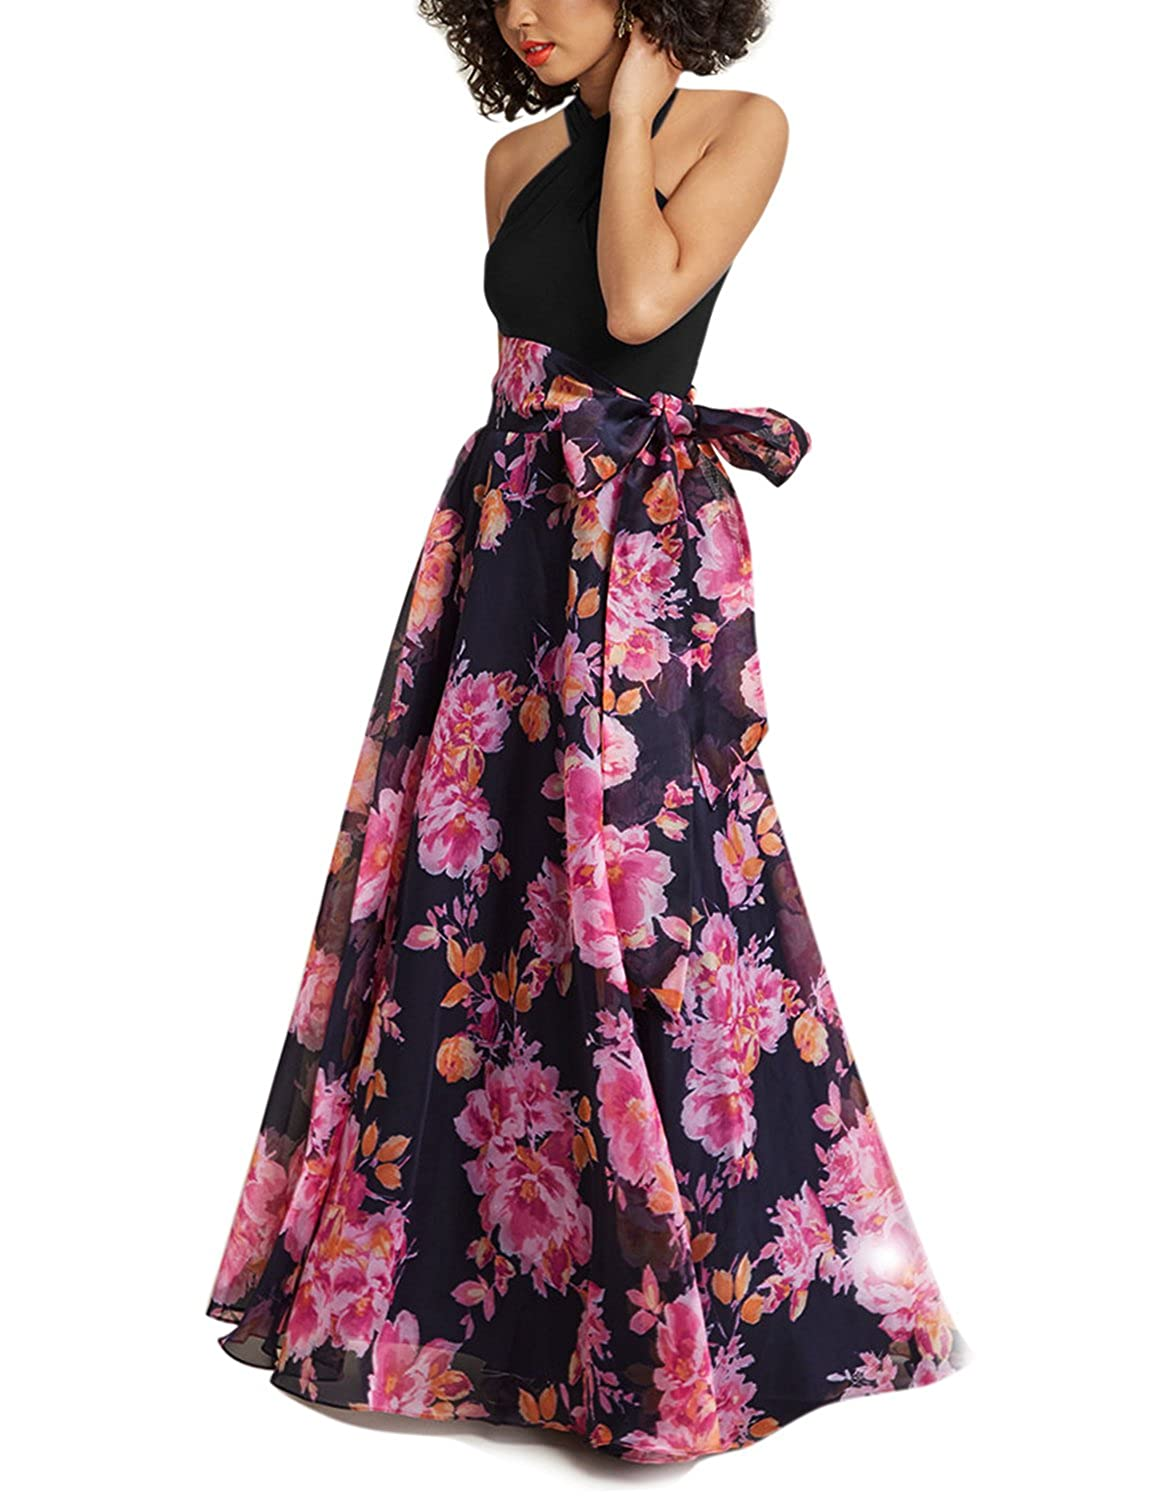 bc5c1184cb4 This full length summer dress is Multi-Way for Convertible